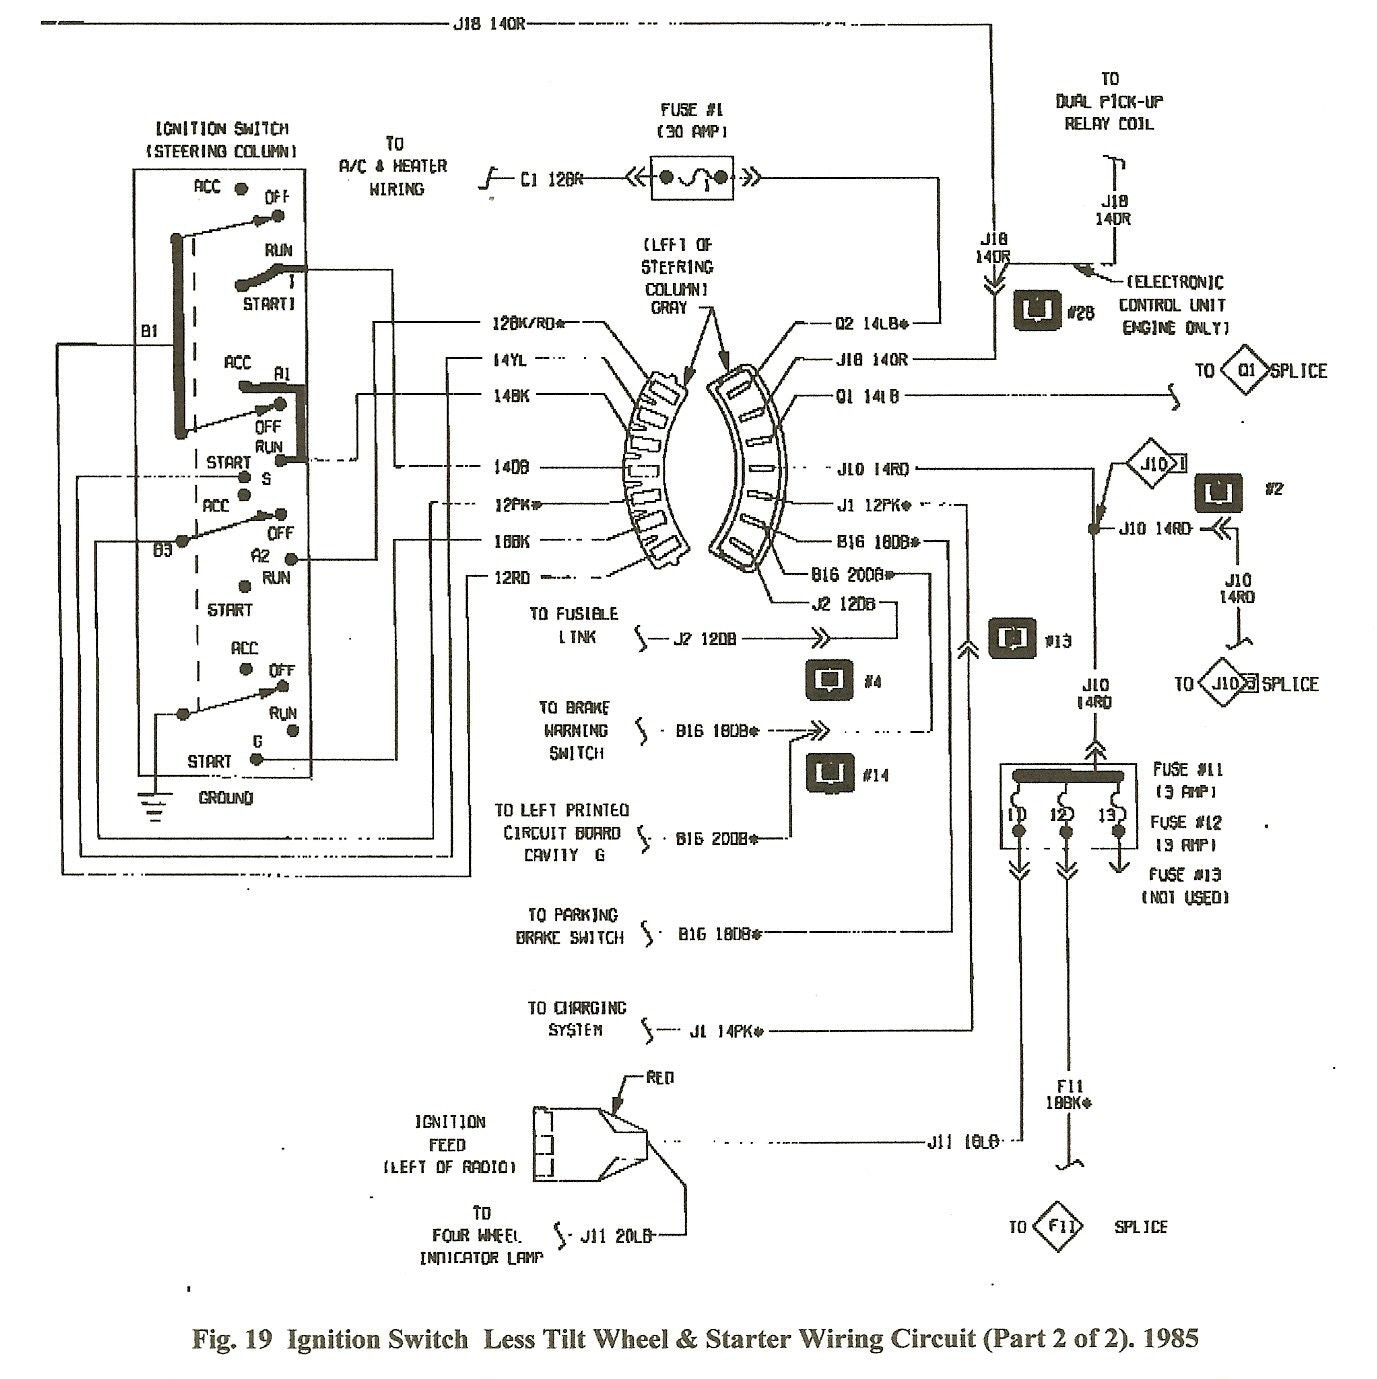 chrysler electronic ignition wiring diagram better sentence structure through diagramming prestolite library